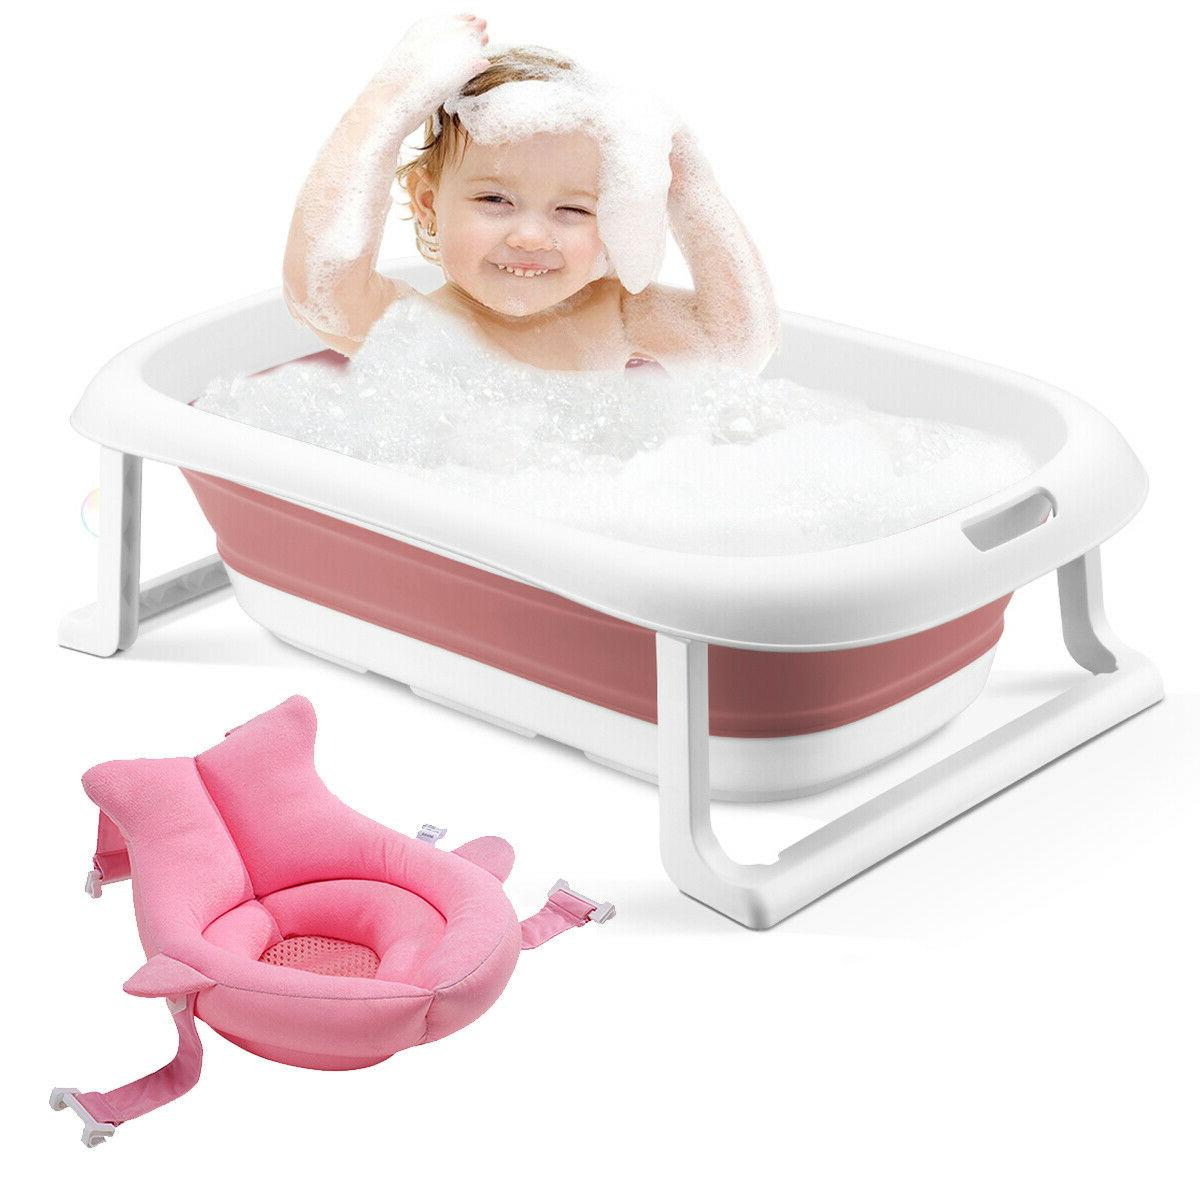 3-in-1 Baby BathTub portable Collapsible Toddler Foldable In